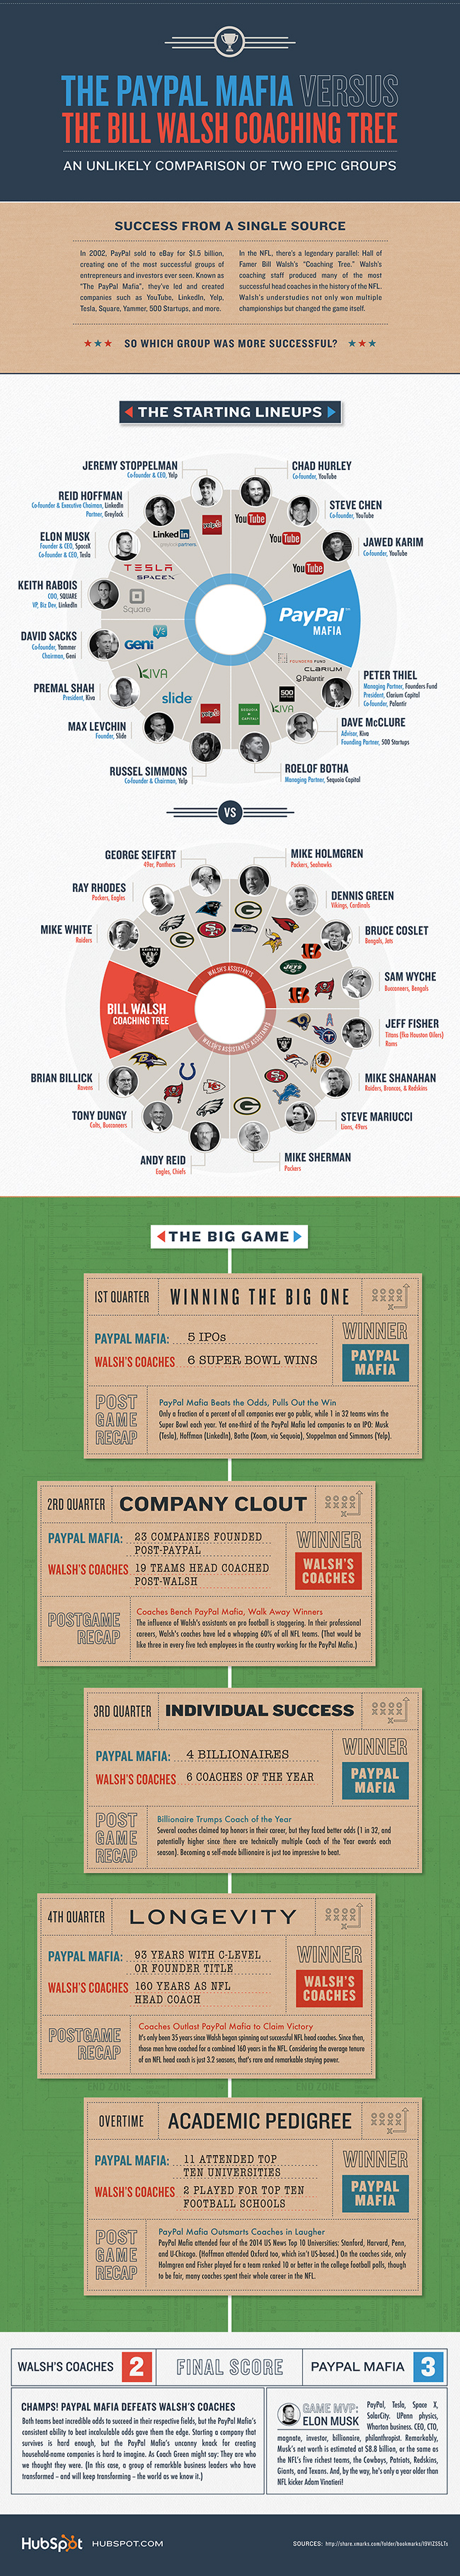 hubspot-paypal-nfl-infographic-650-pixels